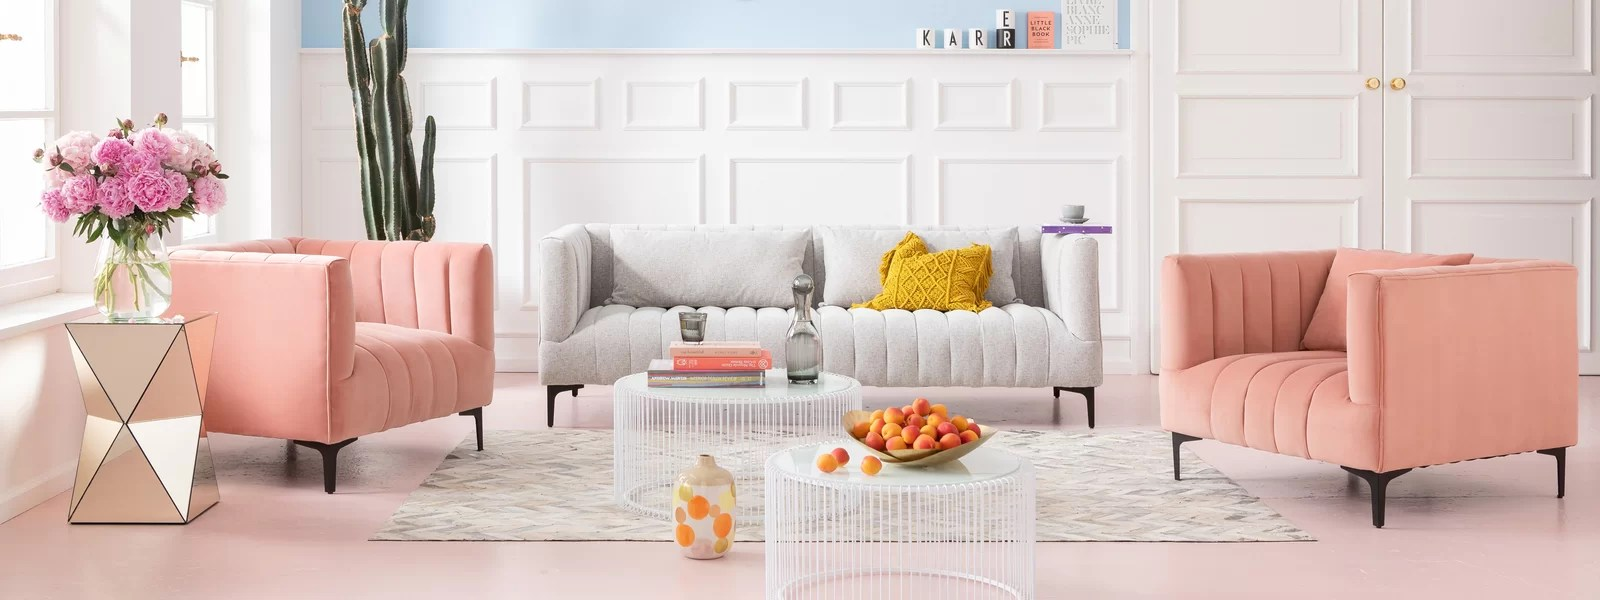 Kare Design Hocker Fell Kare Design Wayfair De